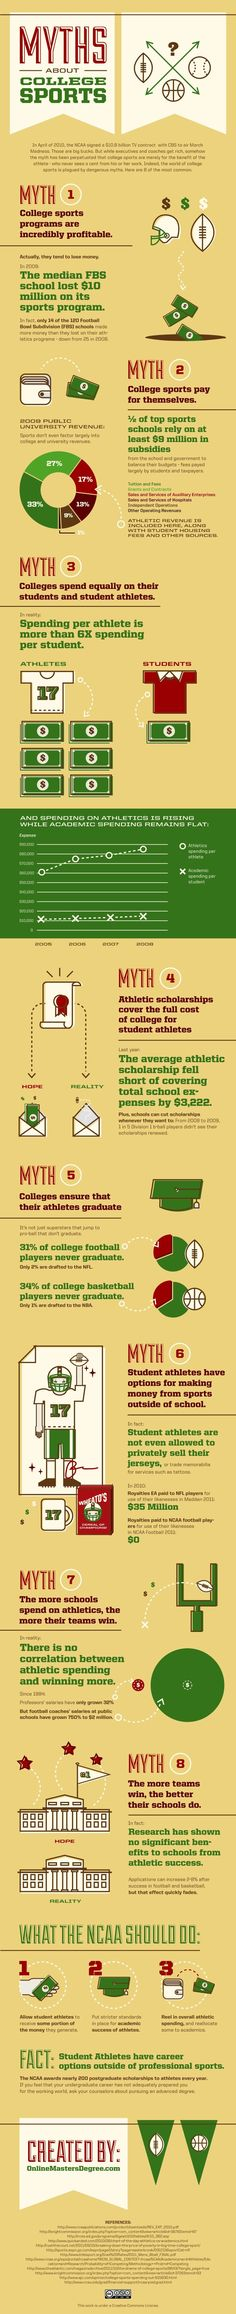 Check out this infographic on Common Myths in College Sports.... How many of these have you heard??